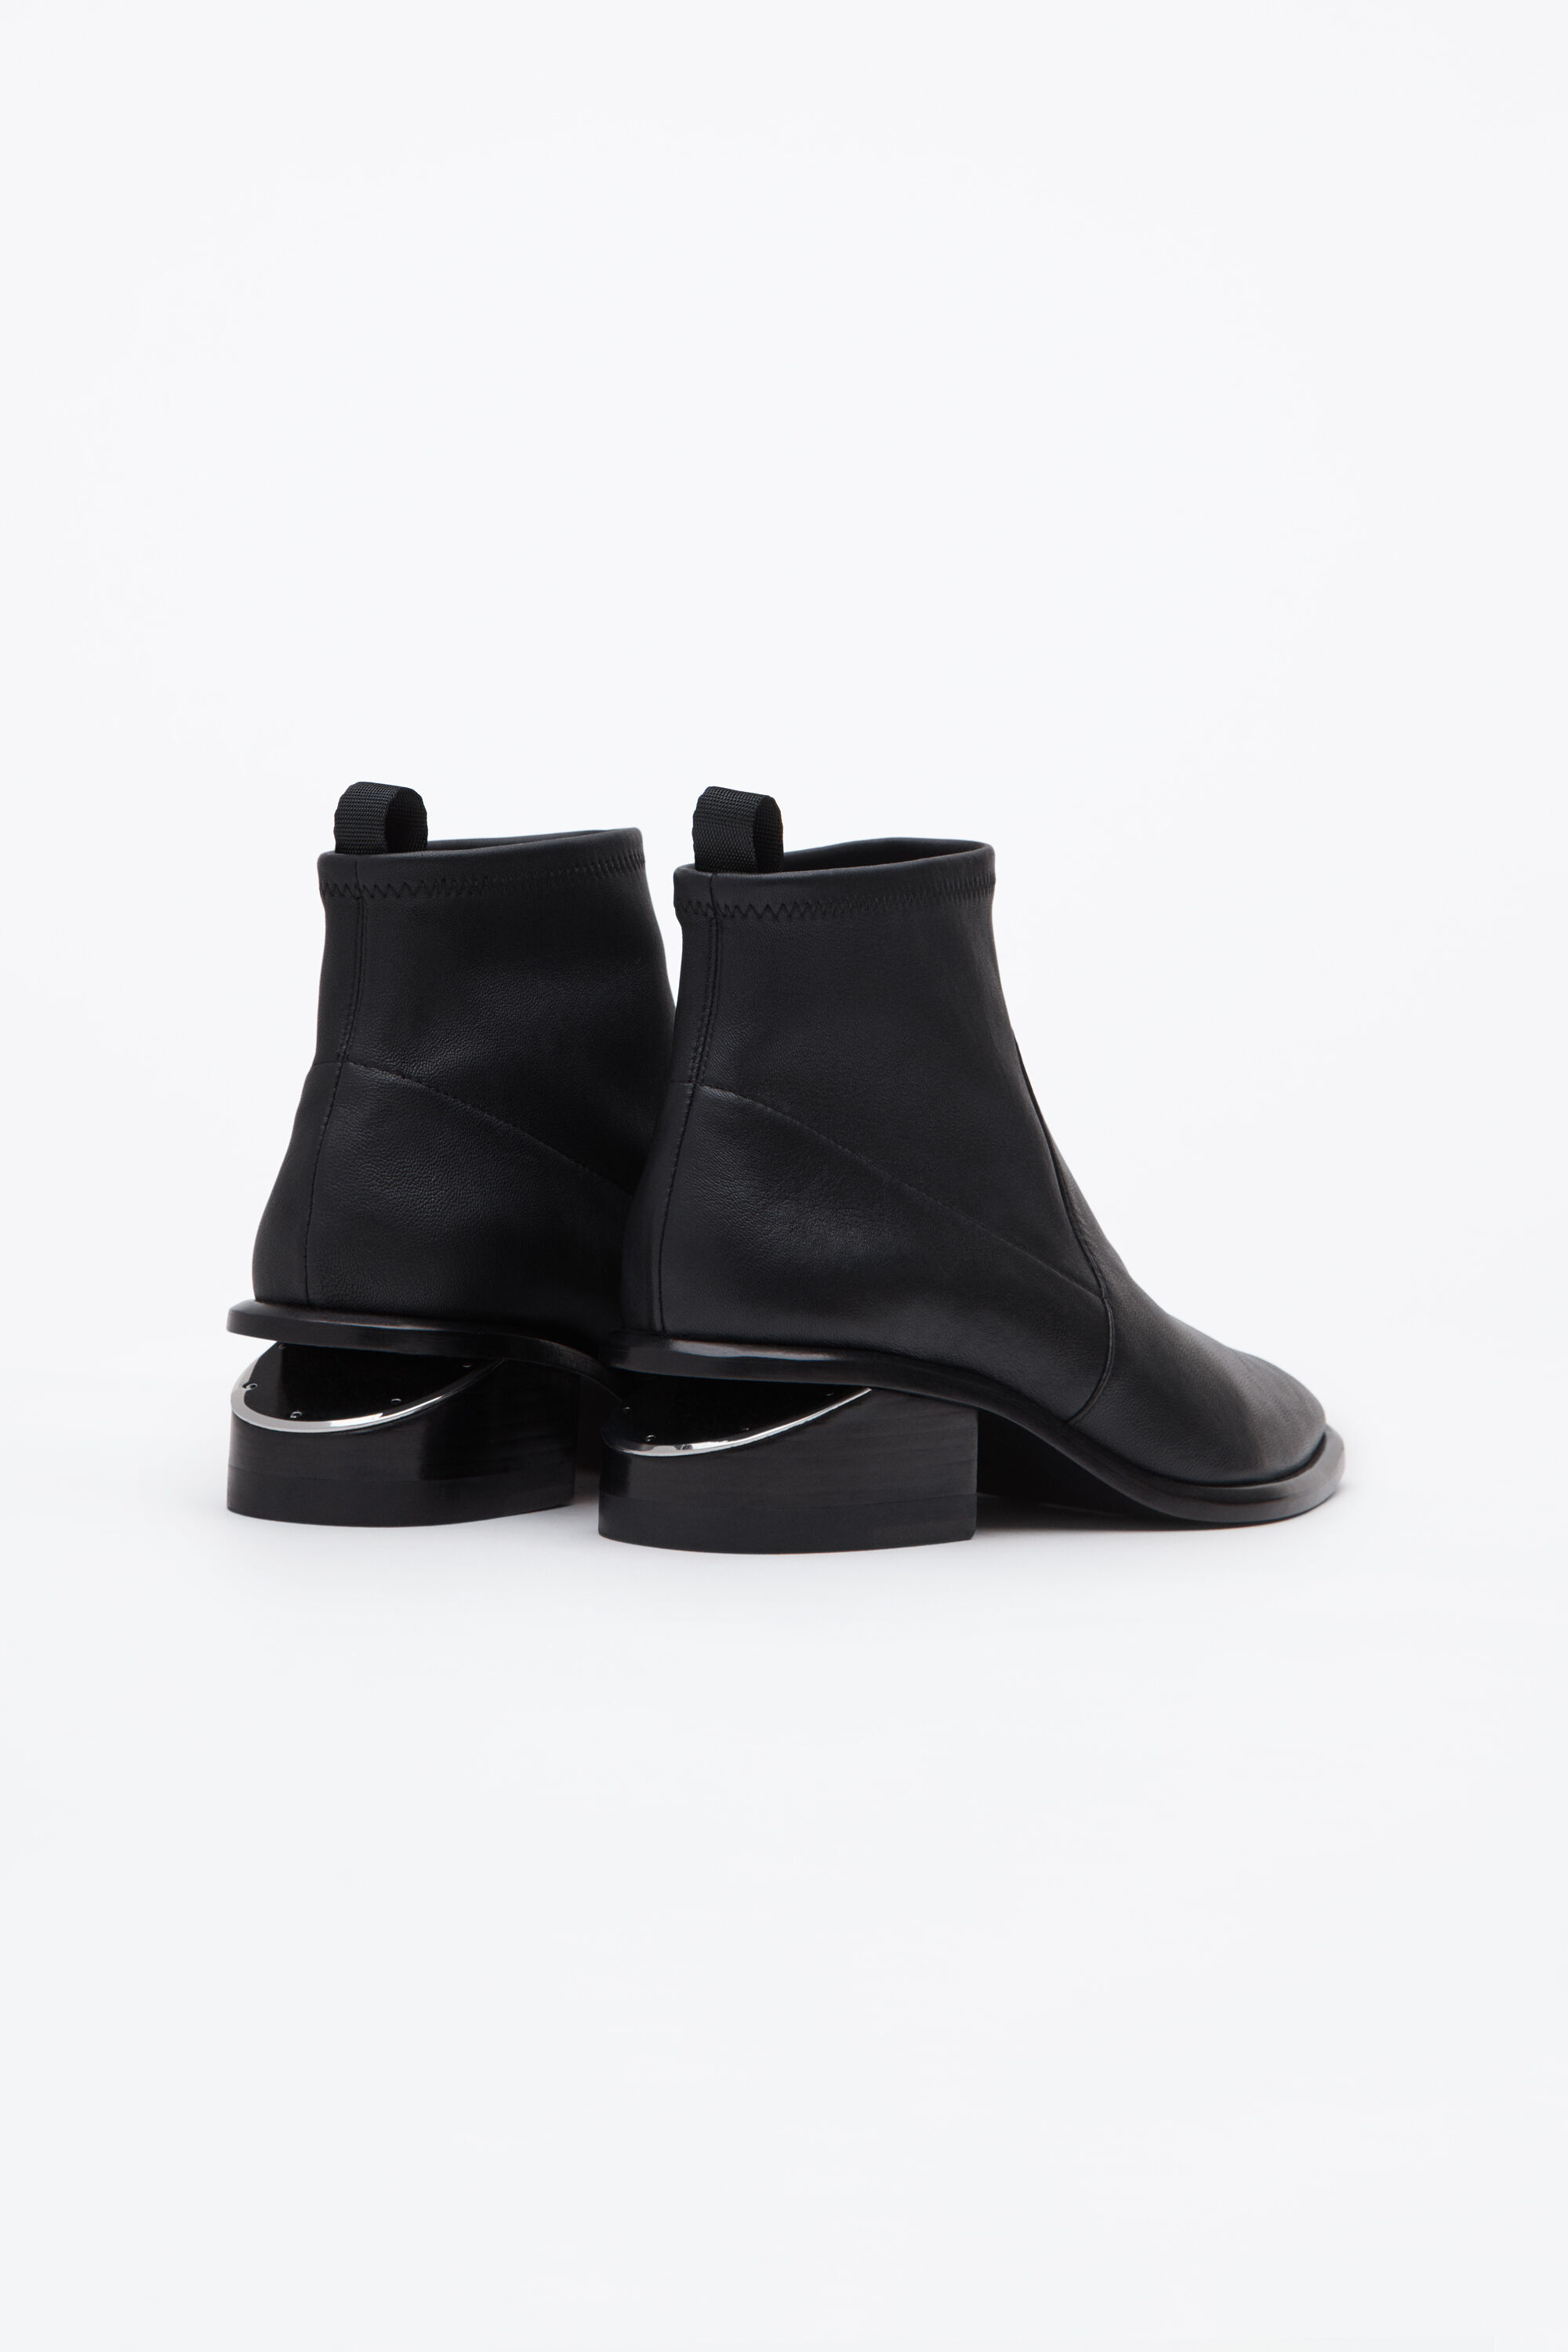 Alexander Wang Kori Stretch Leather Booties Flash Sales, UP TO 10 OFF